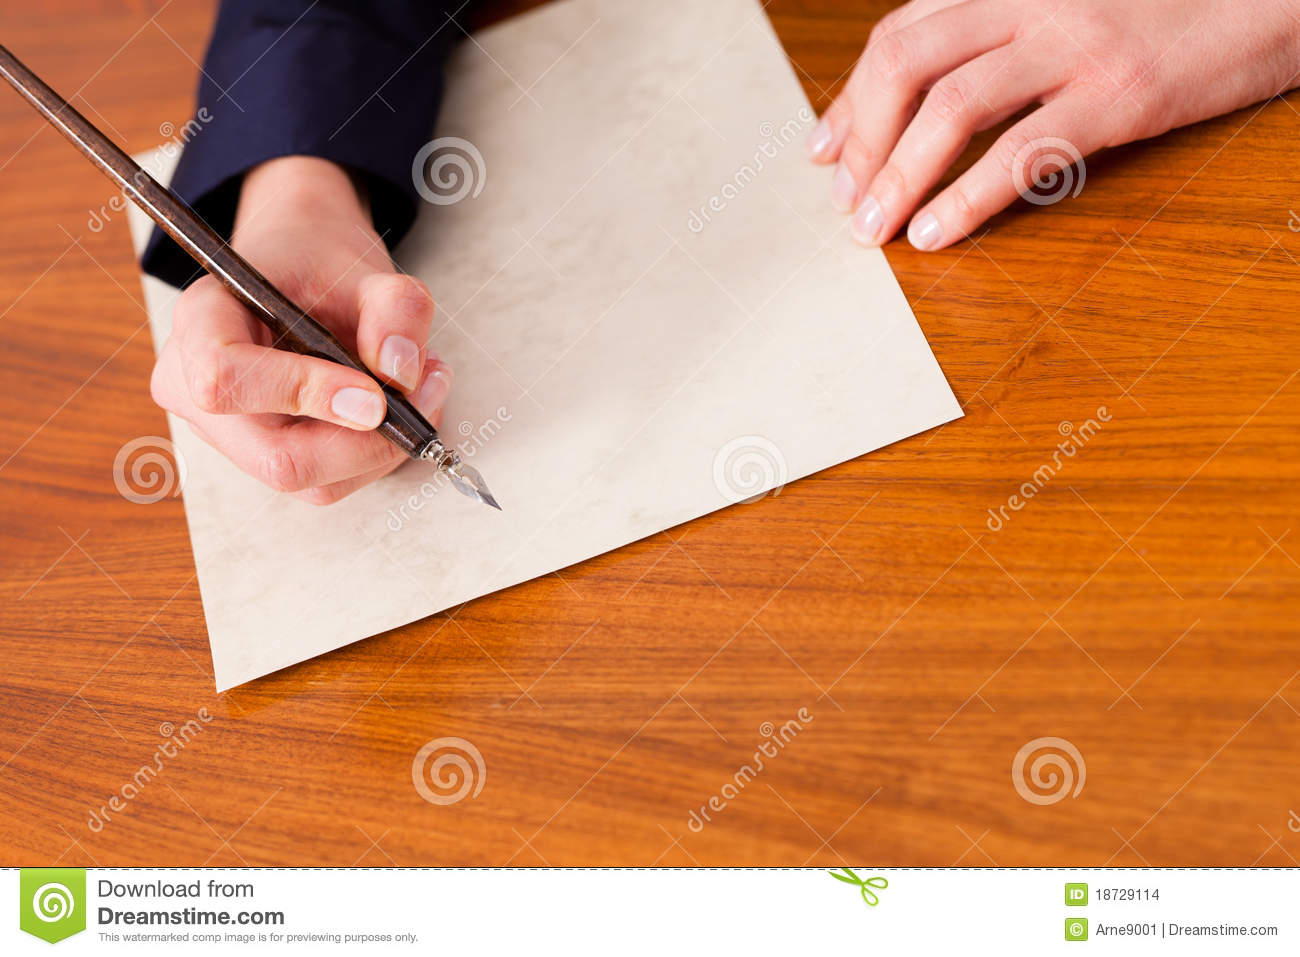 Woman Writing A Letter With Pen And Ink Stock Photo